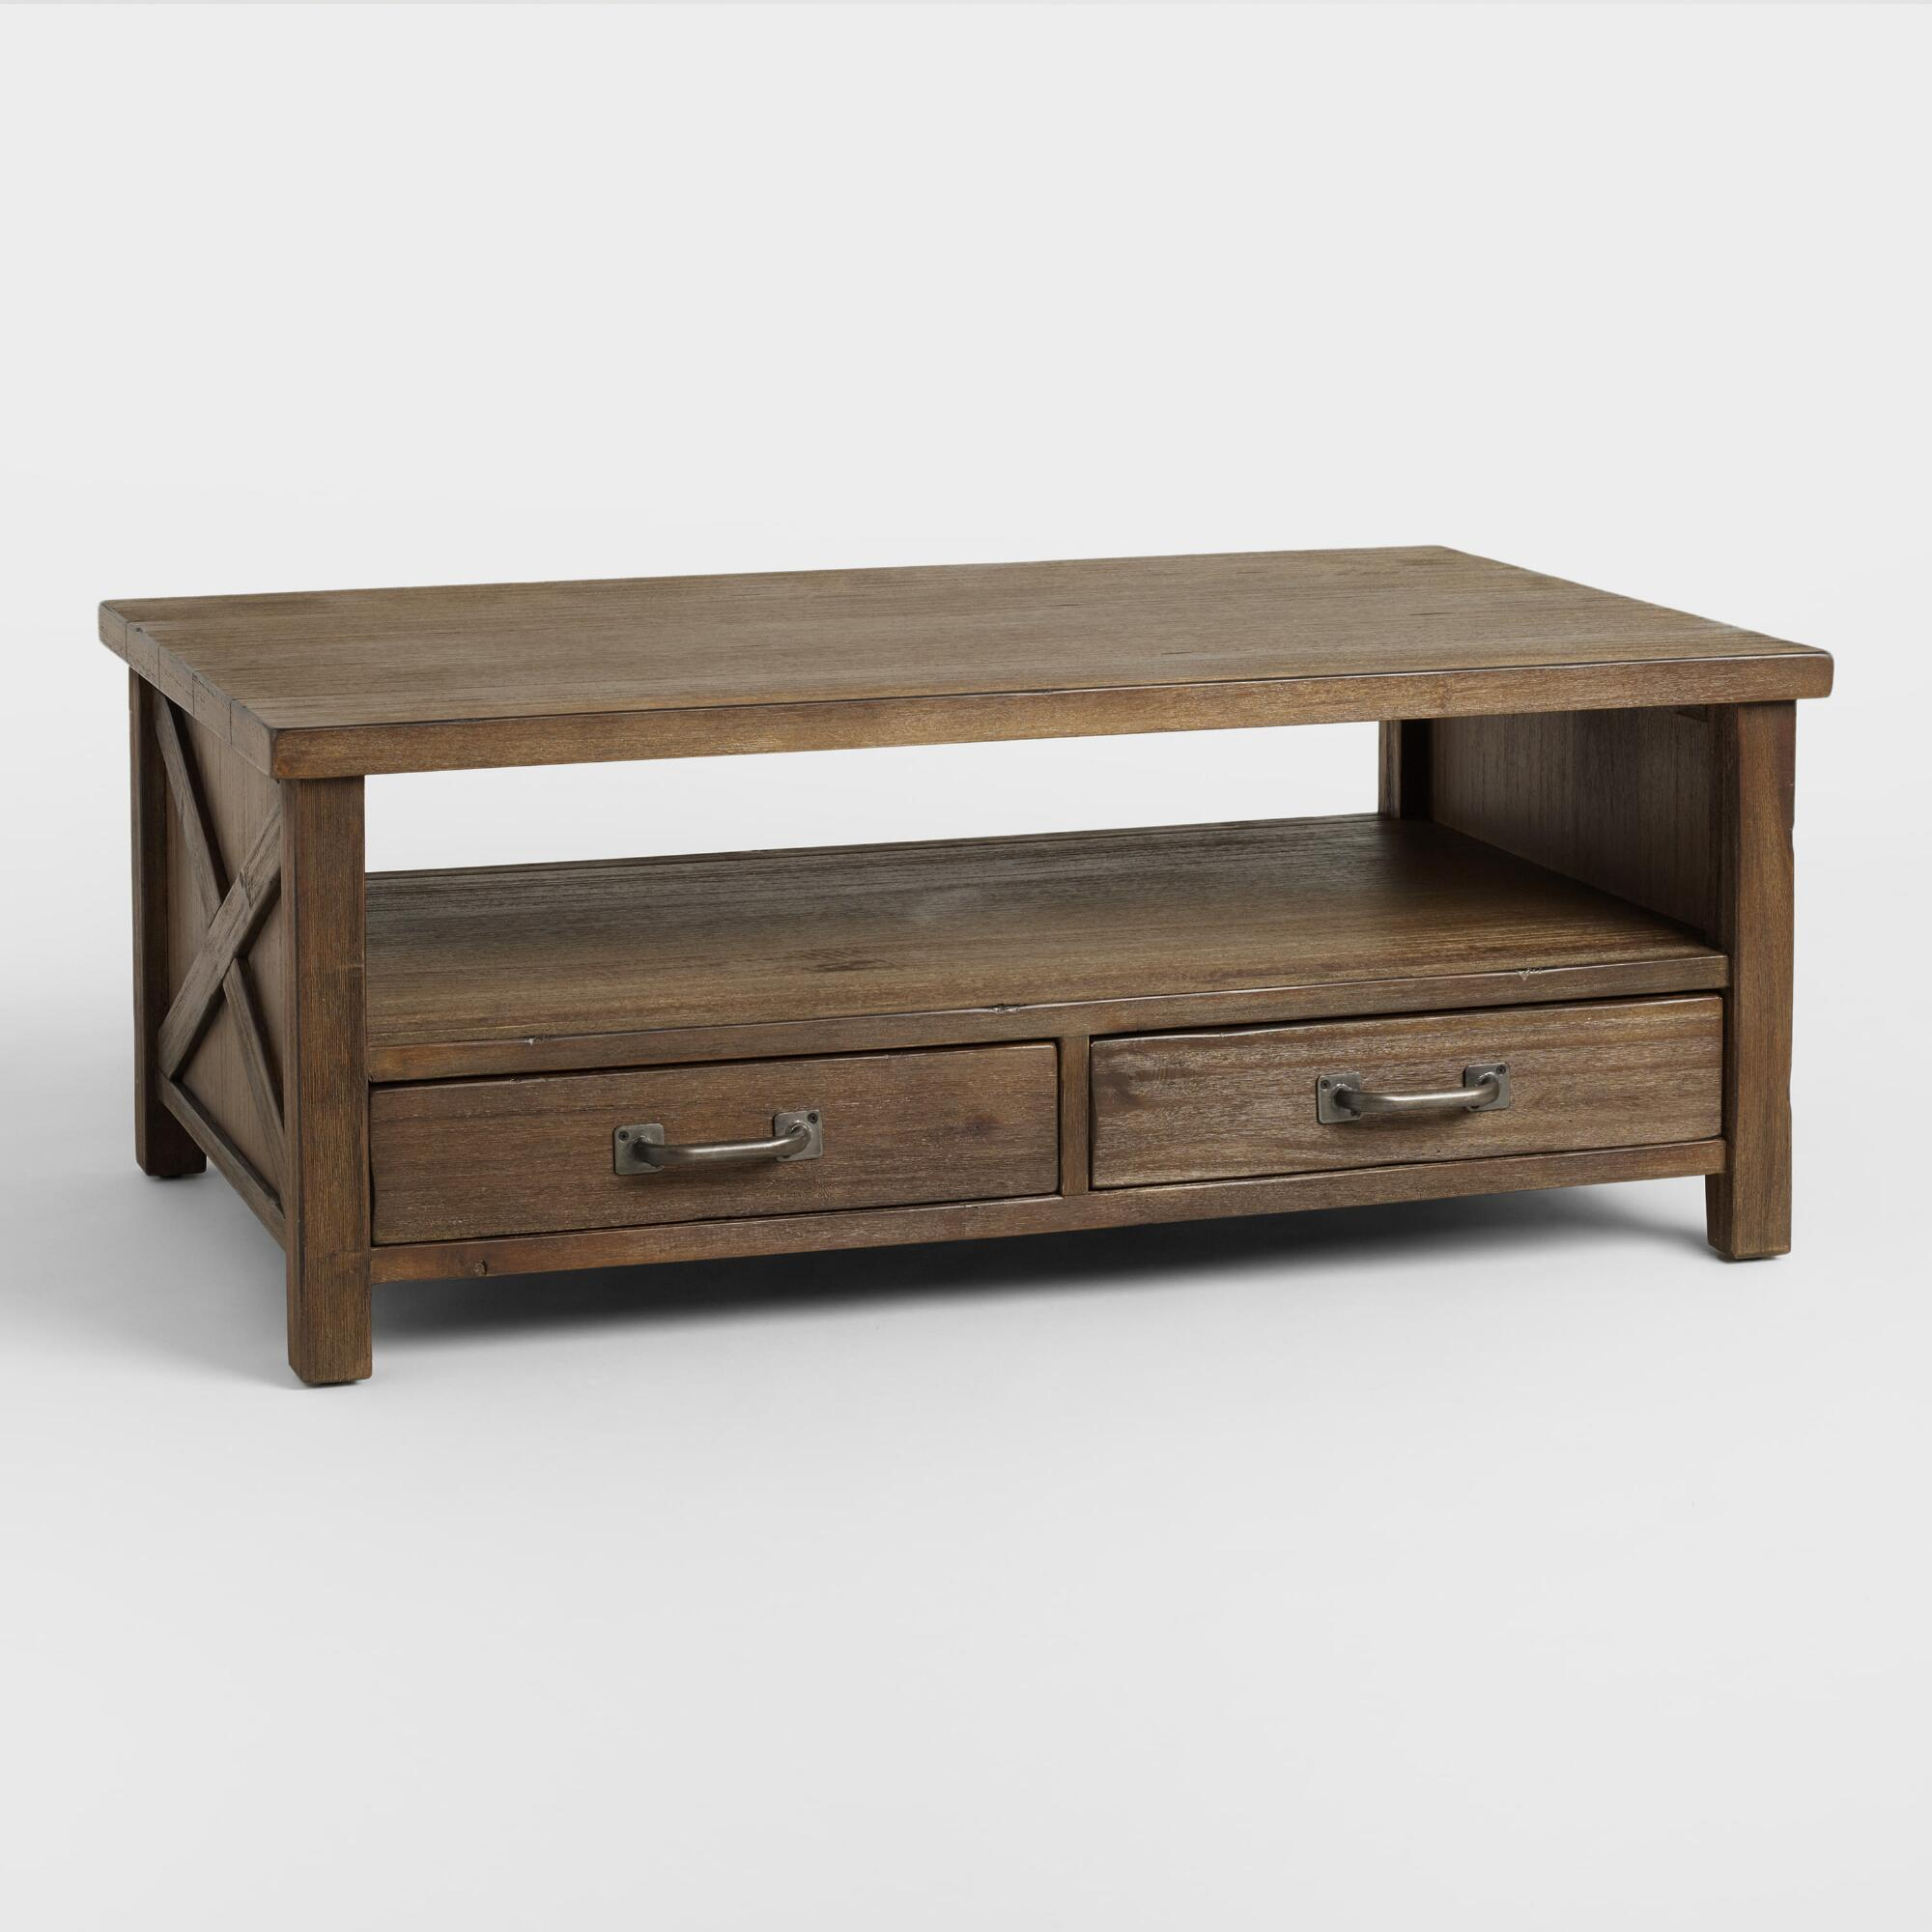 World market sofa table chloe furniture collection world for Table furniture